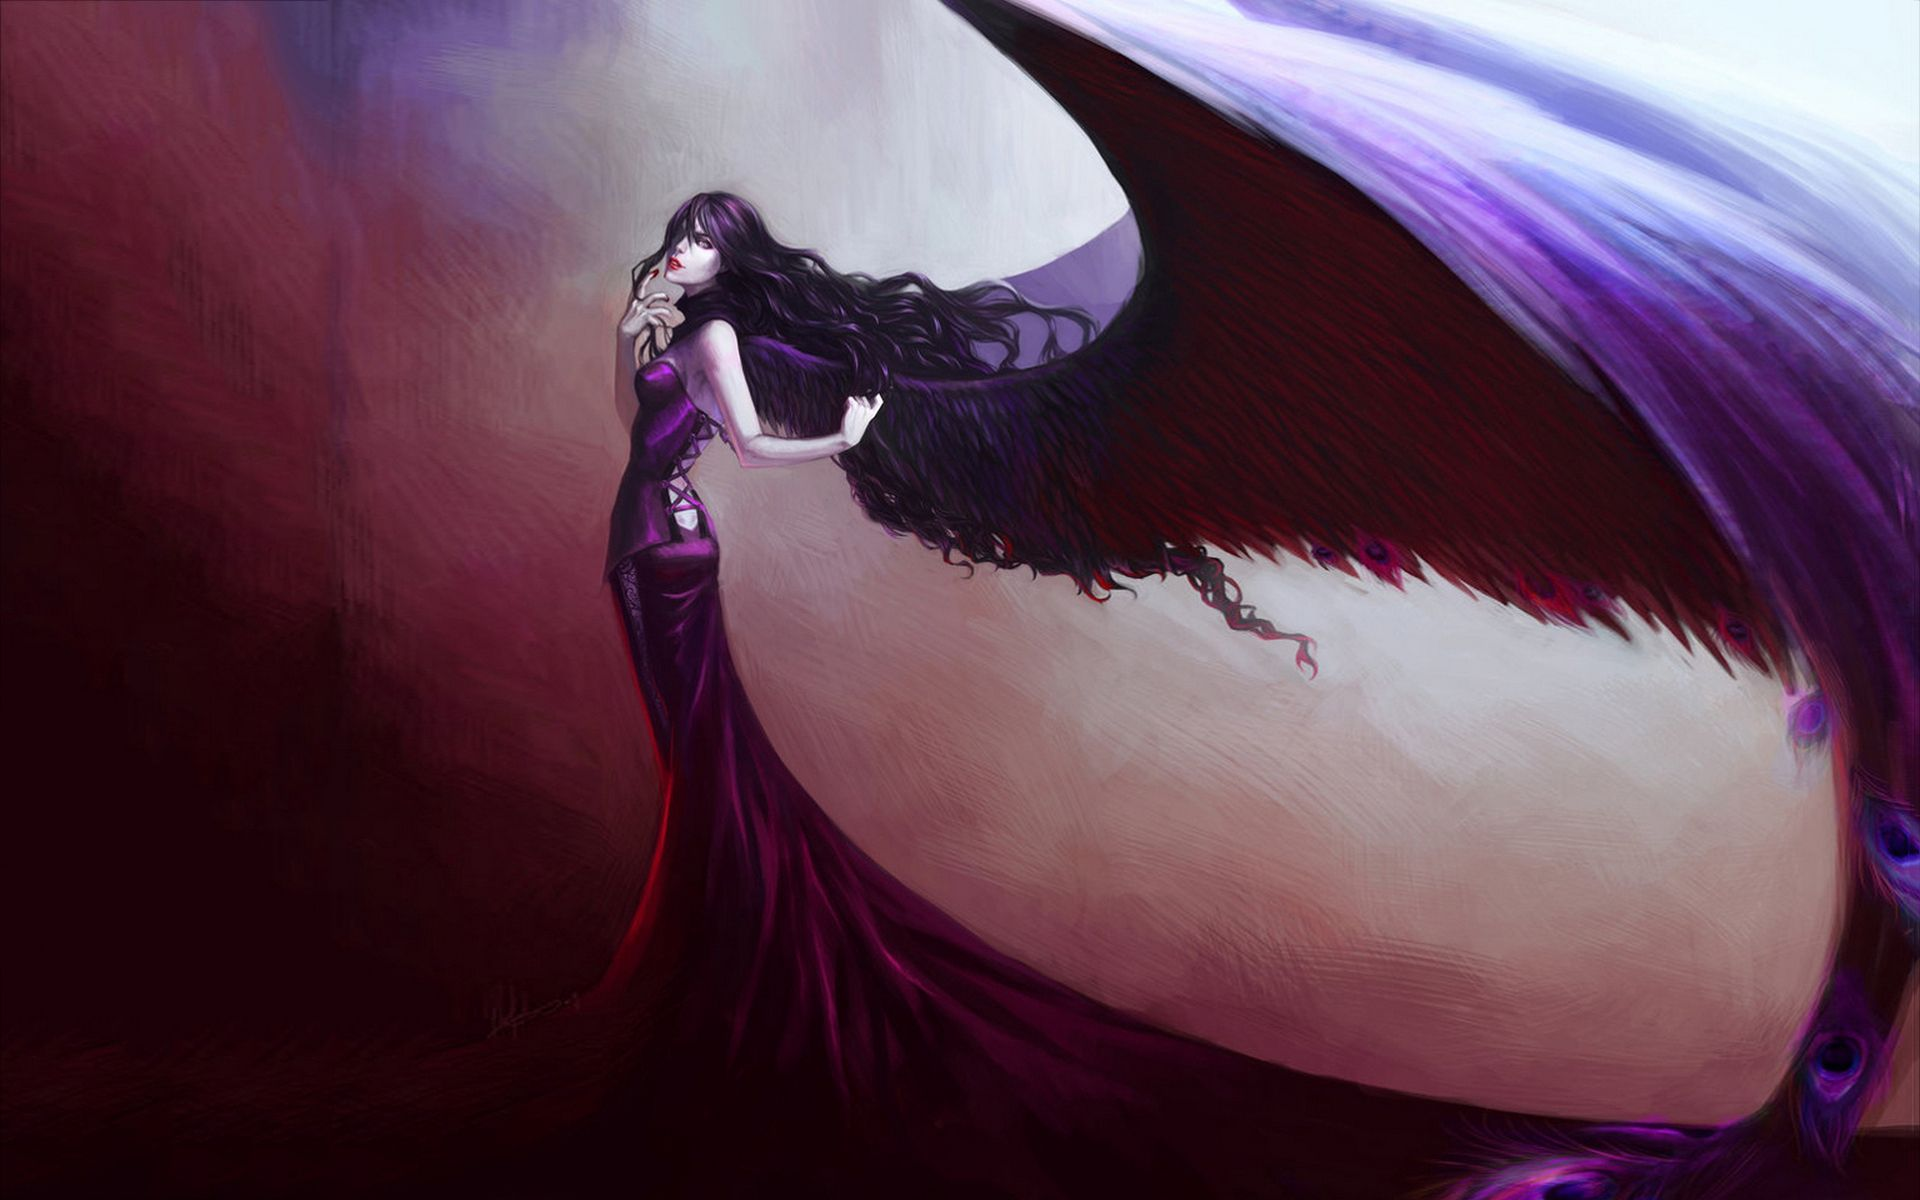 1920x1200 Fallen Angel Wallpaper - Wallpapers Browse